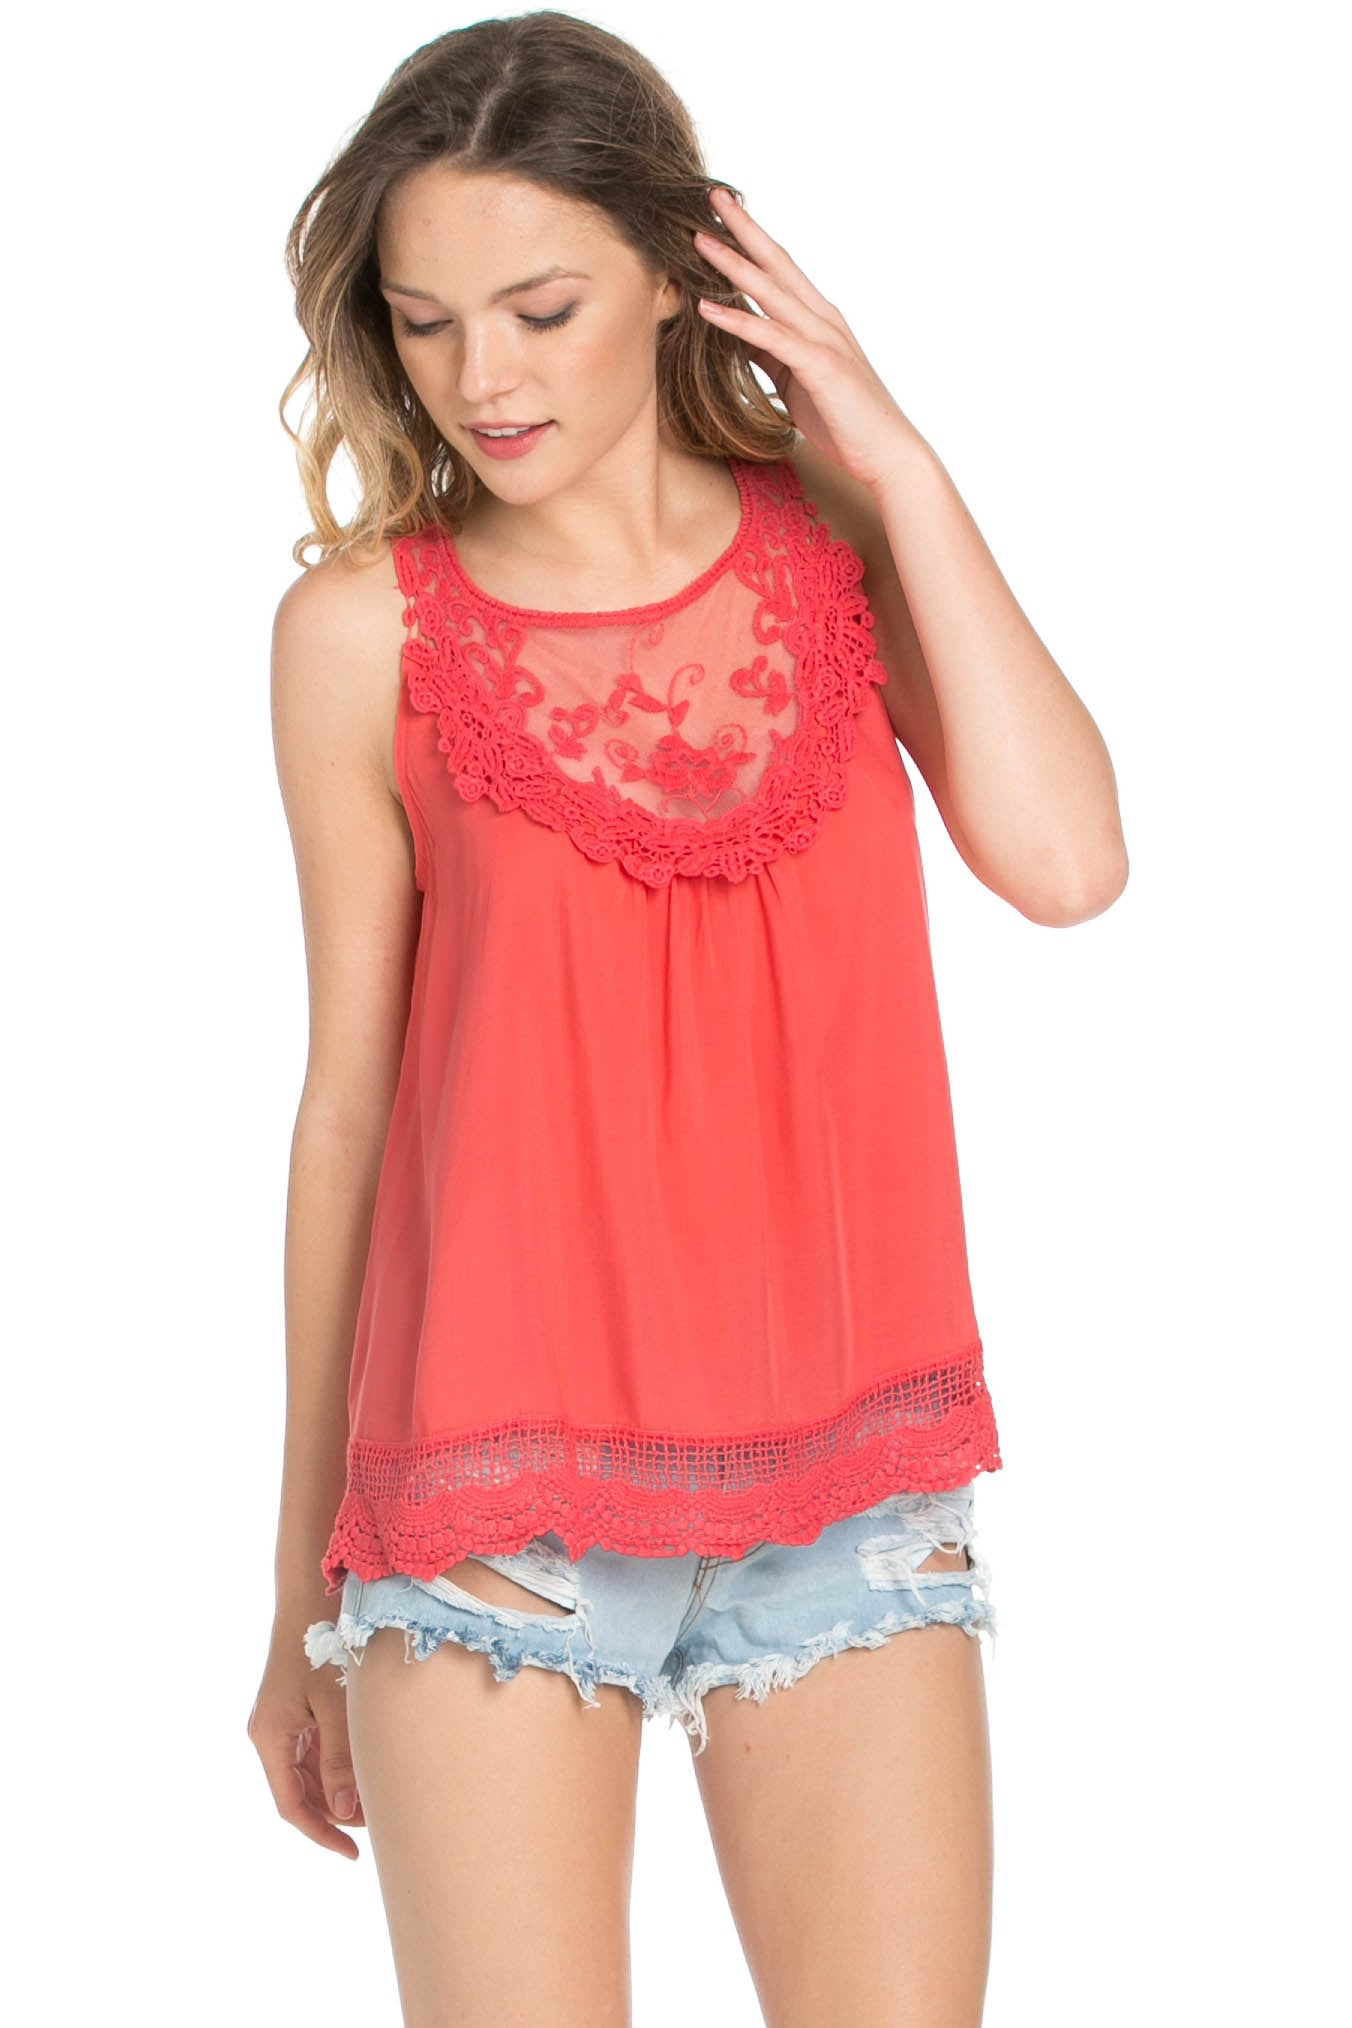 Crochets and Lace Coral Top - Tops - My Yuccie - 1